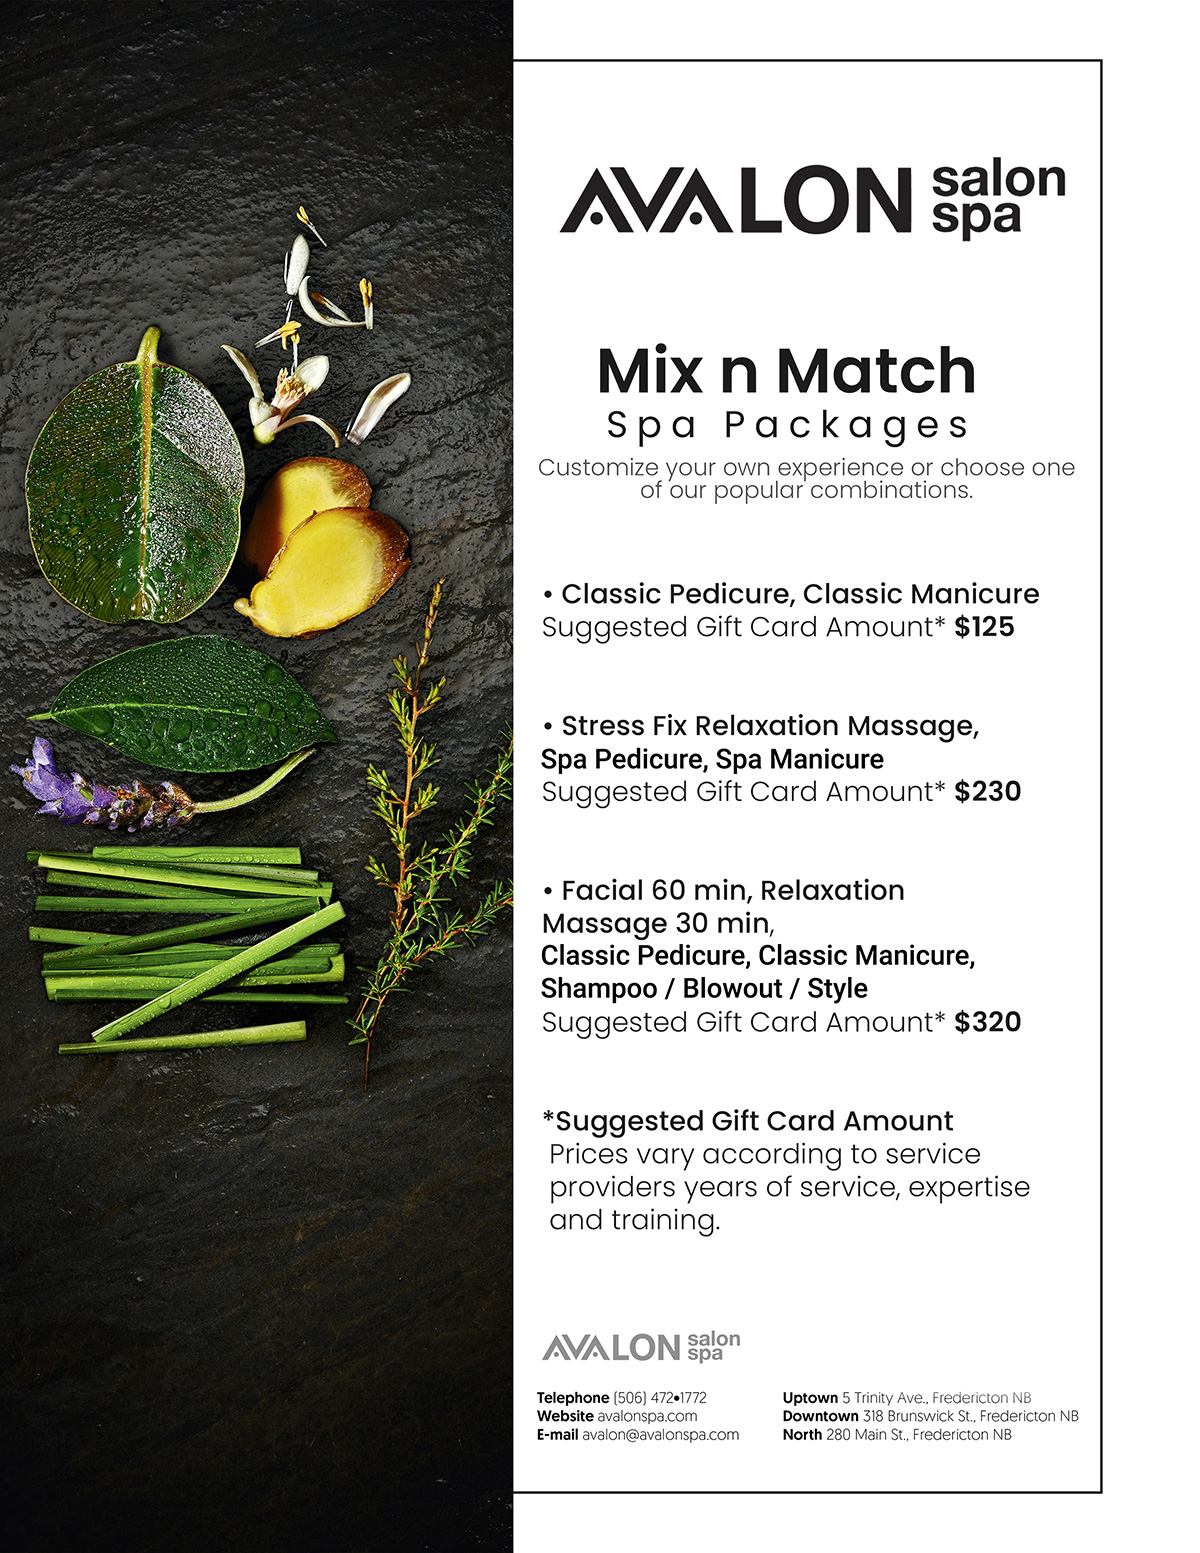 mix-n-match-spa-packages_avalon